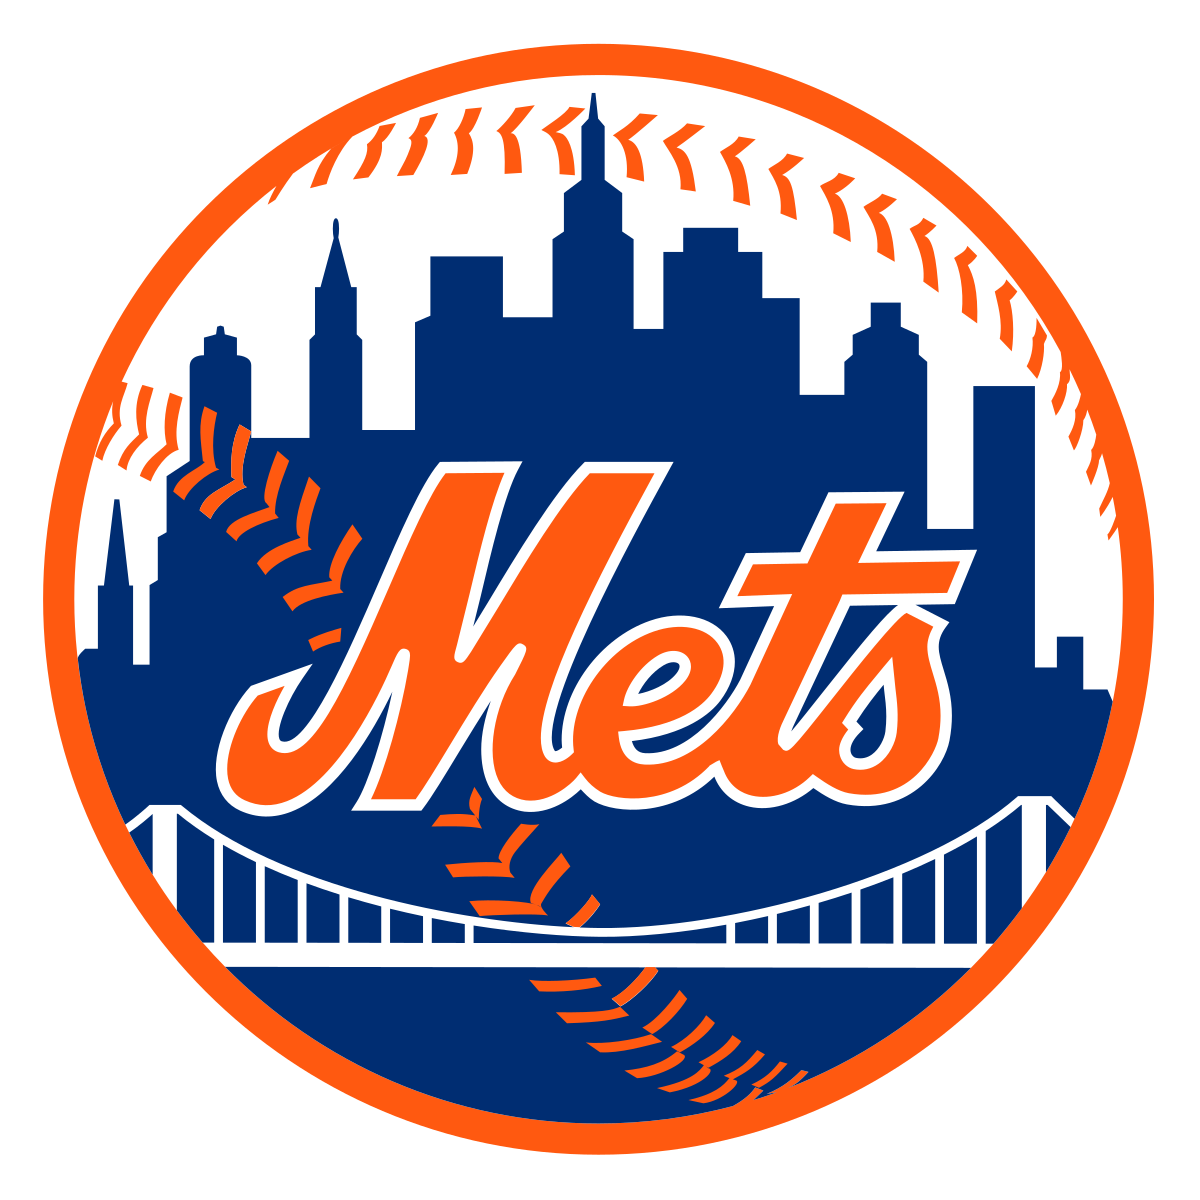 Logos and uniforms of the New York Mets.